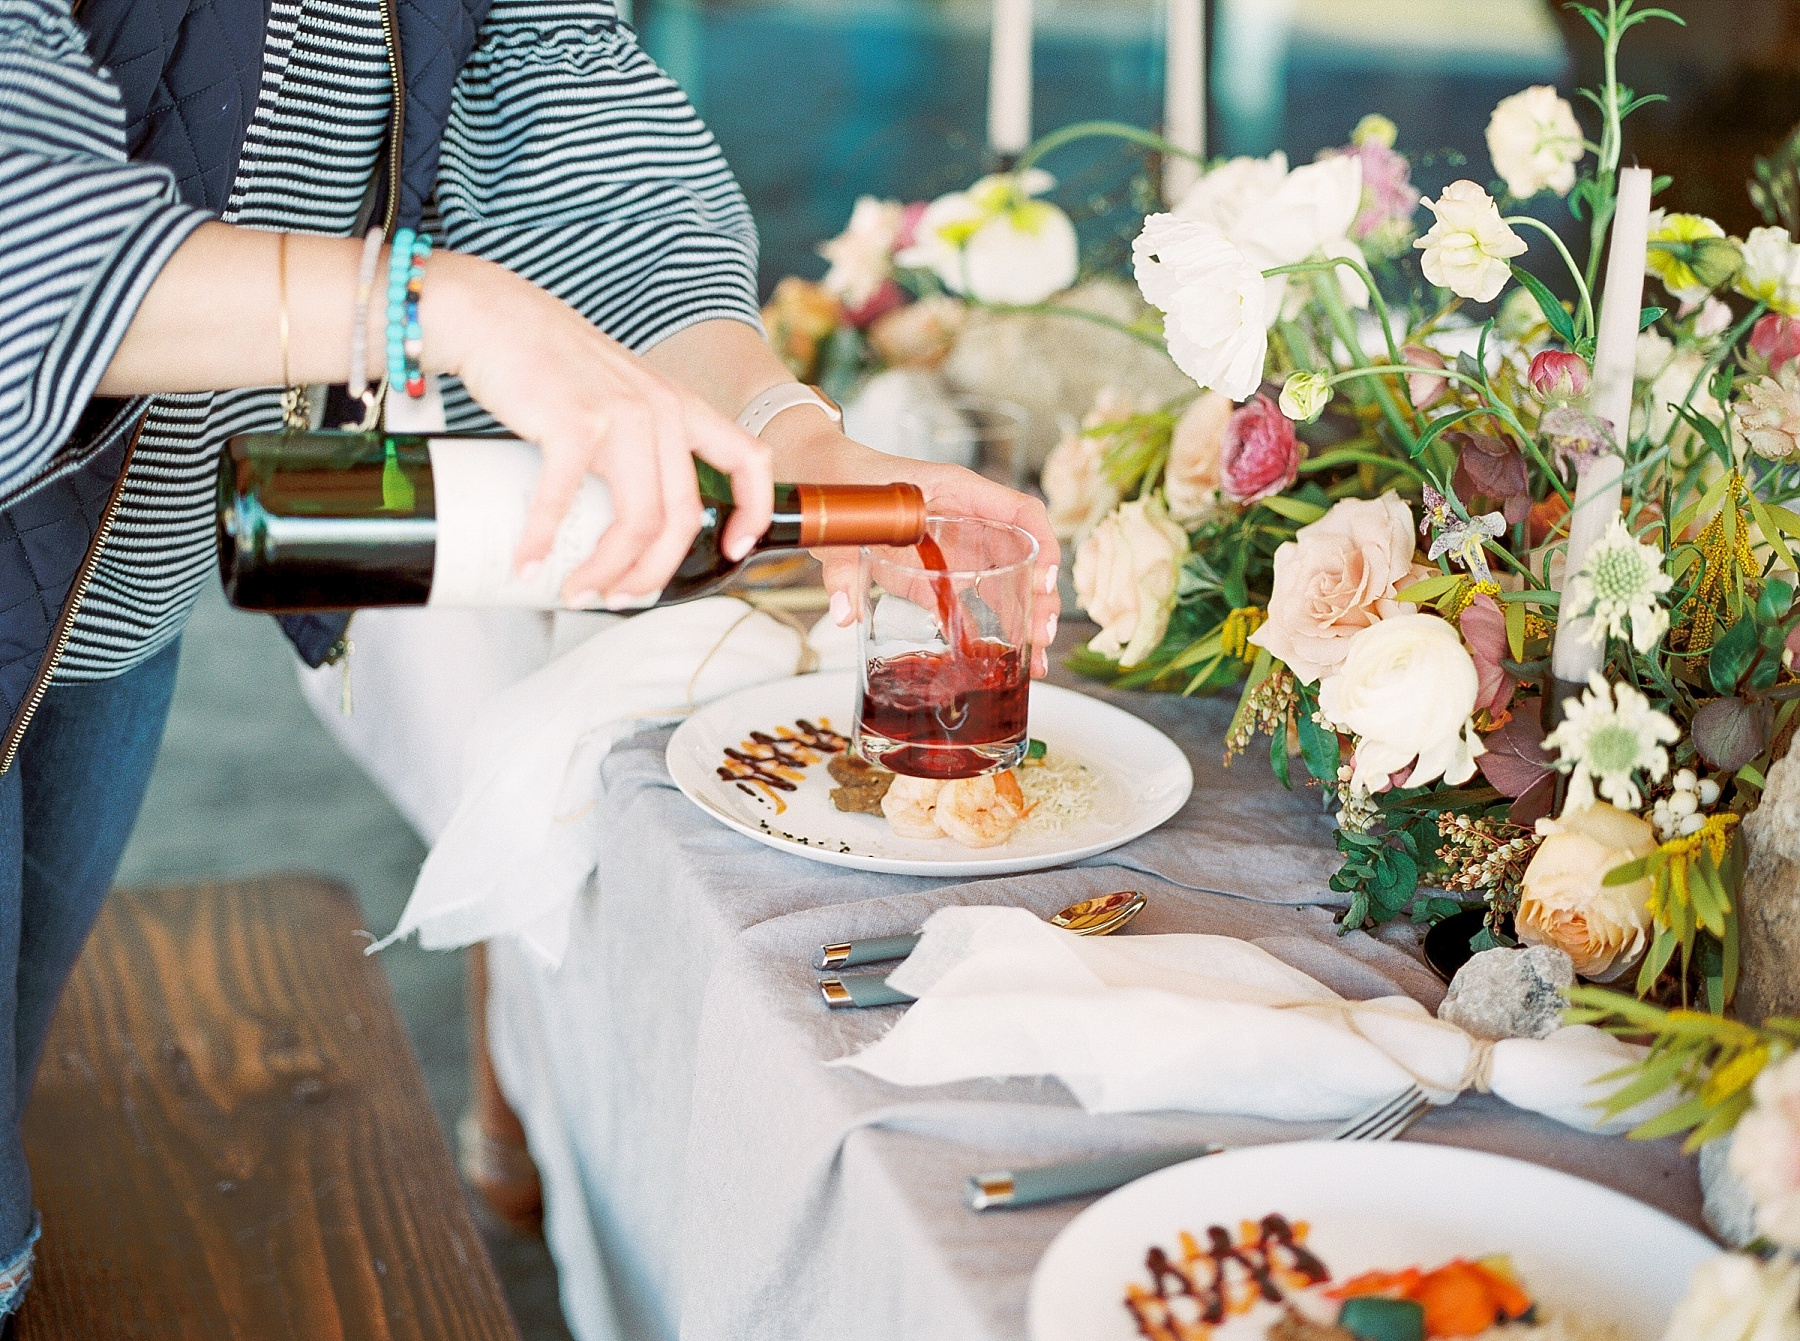 Lakeside Sunset Wedding with Magnificent Abundance of Blooms at Emerson Fields by Kelsi Kliethermes Photography Best Missouri and Maui Wedding Photographer_0006.jpg